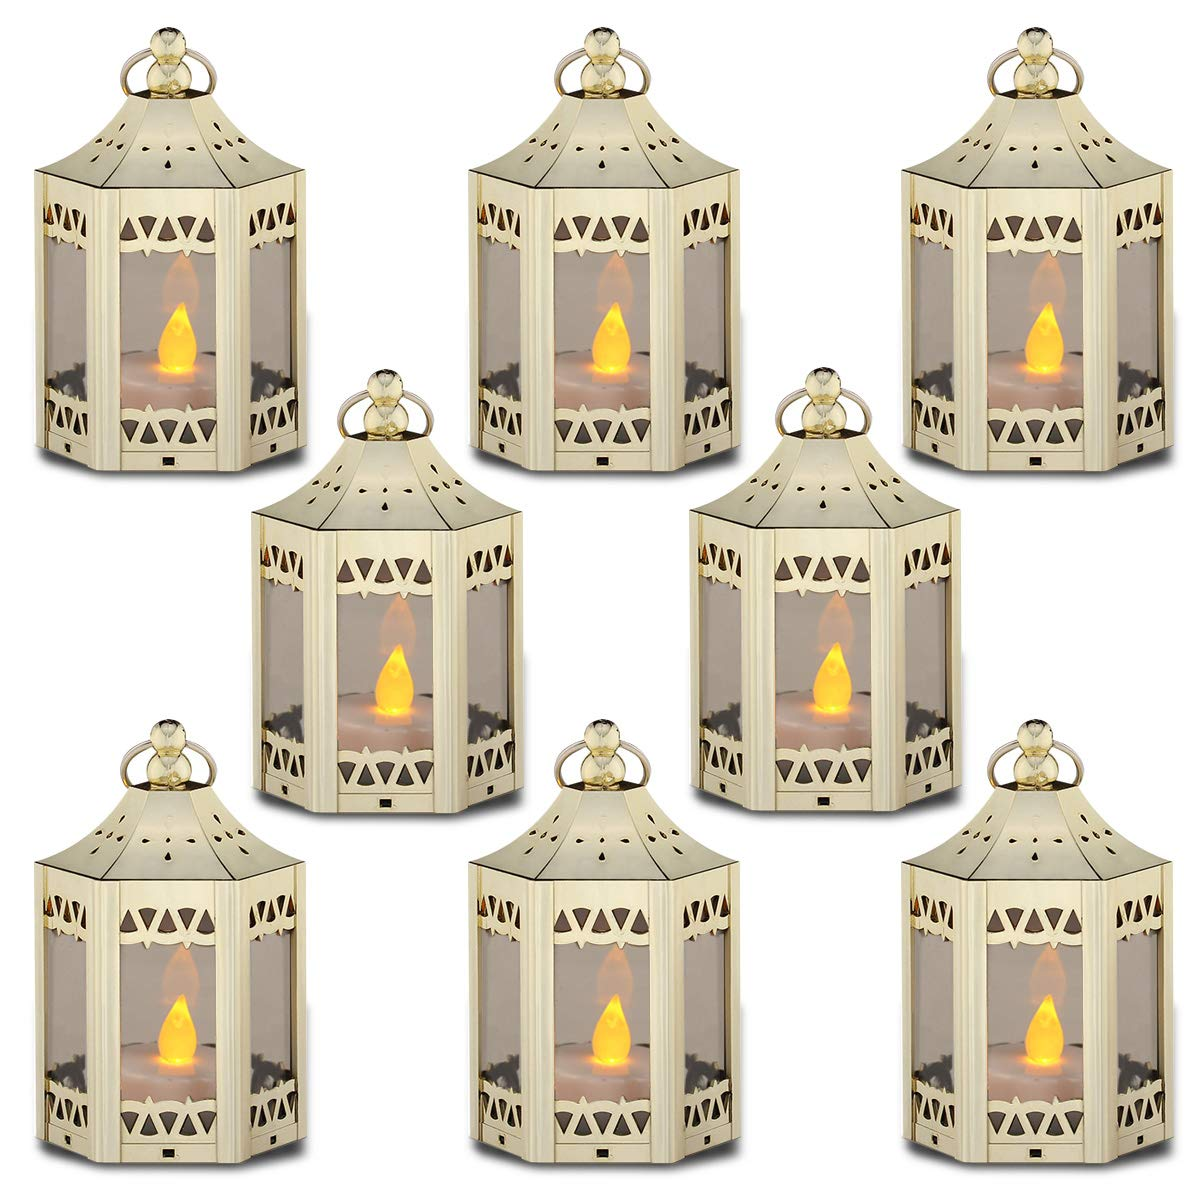 These mini lanterns are perfect for centerpieces! They come in multiple colors and are $20 for 8.